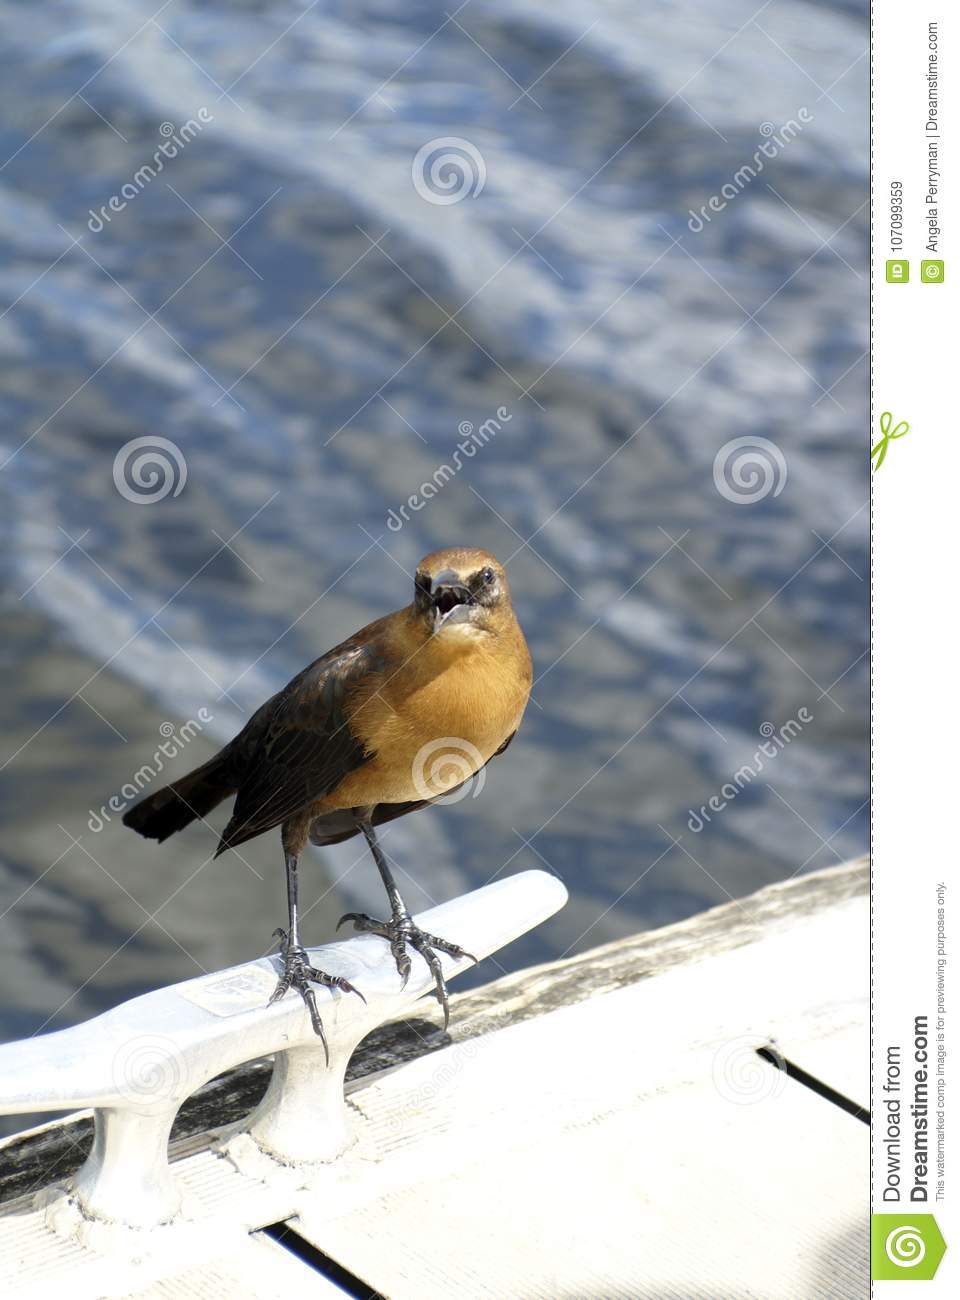 Boat-tailed grackle in Everglades National Park, Florida, USA